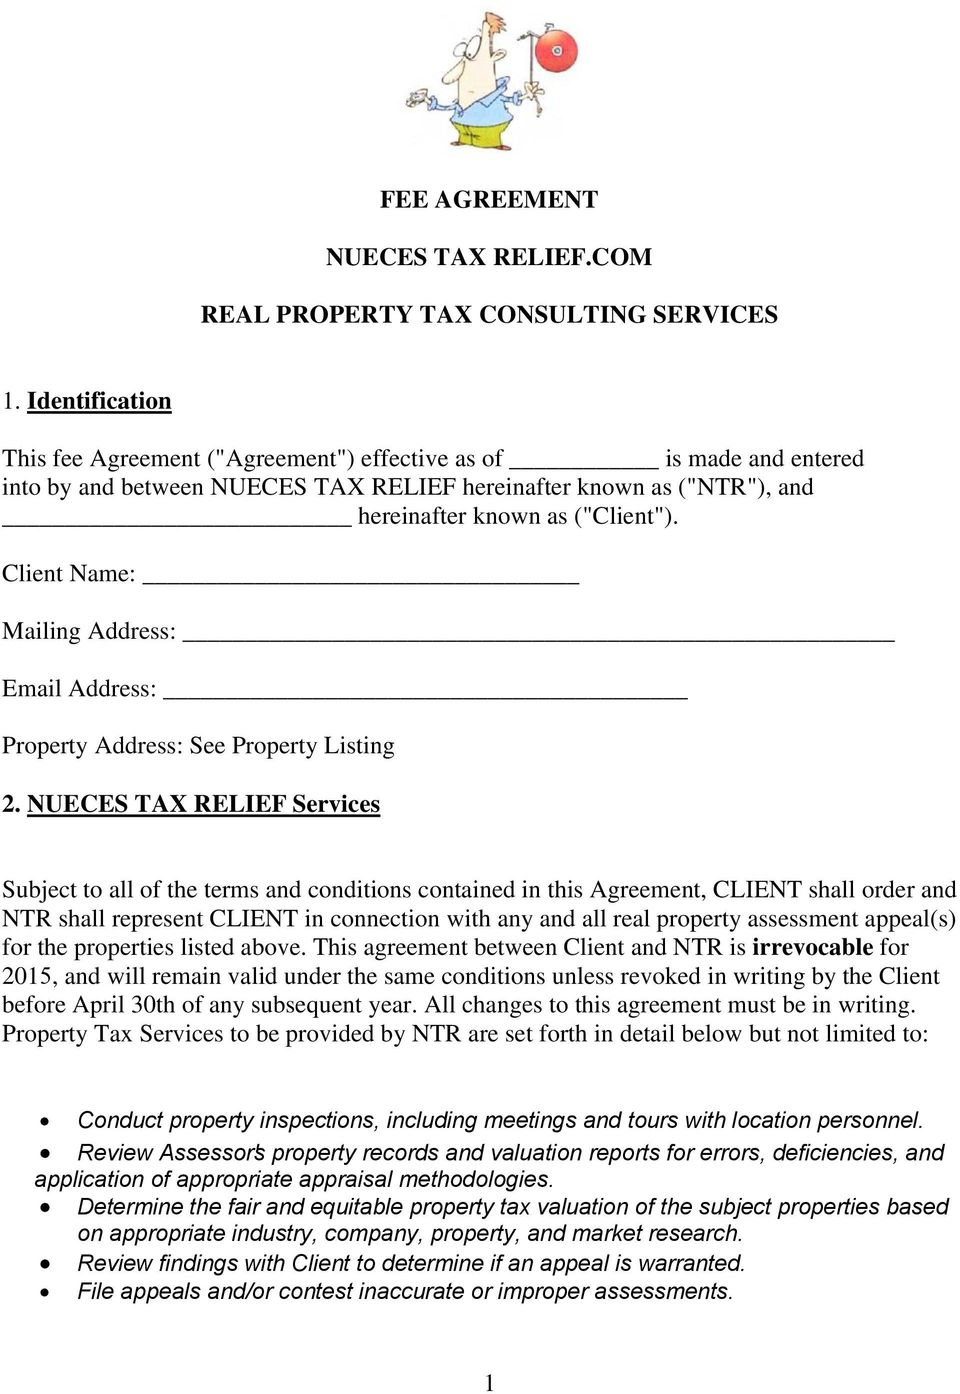 Fee Agreement Nueces Tax Relief Real Property Tax Consulting